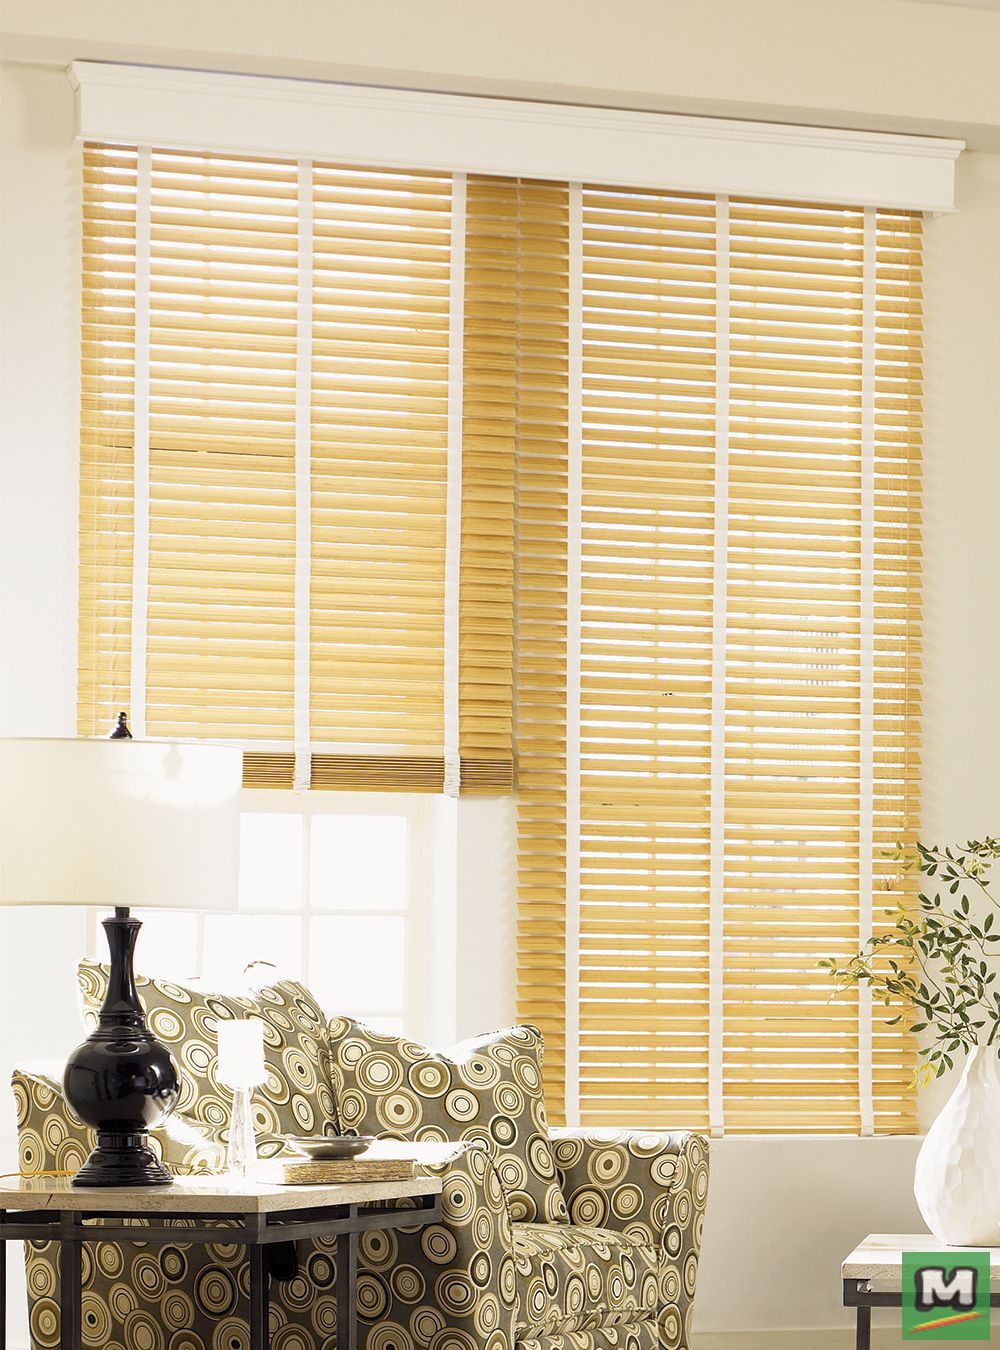 Enhance your home décor with bali blinds or shades offering a wide